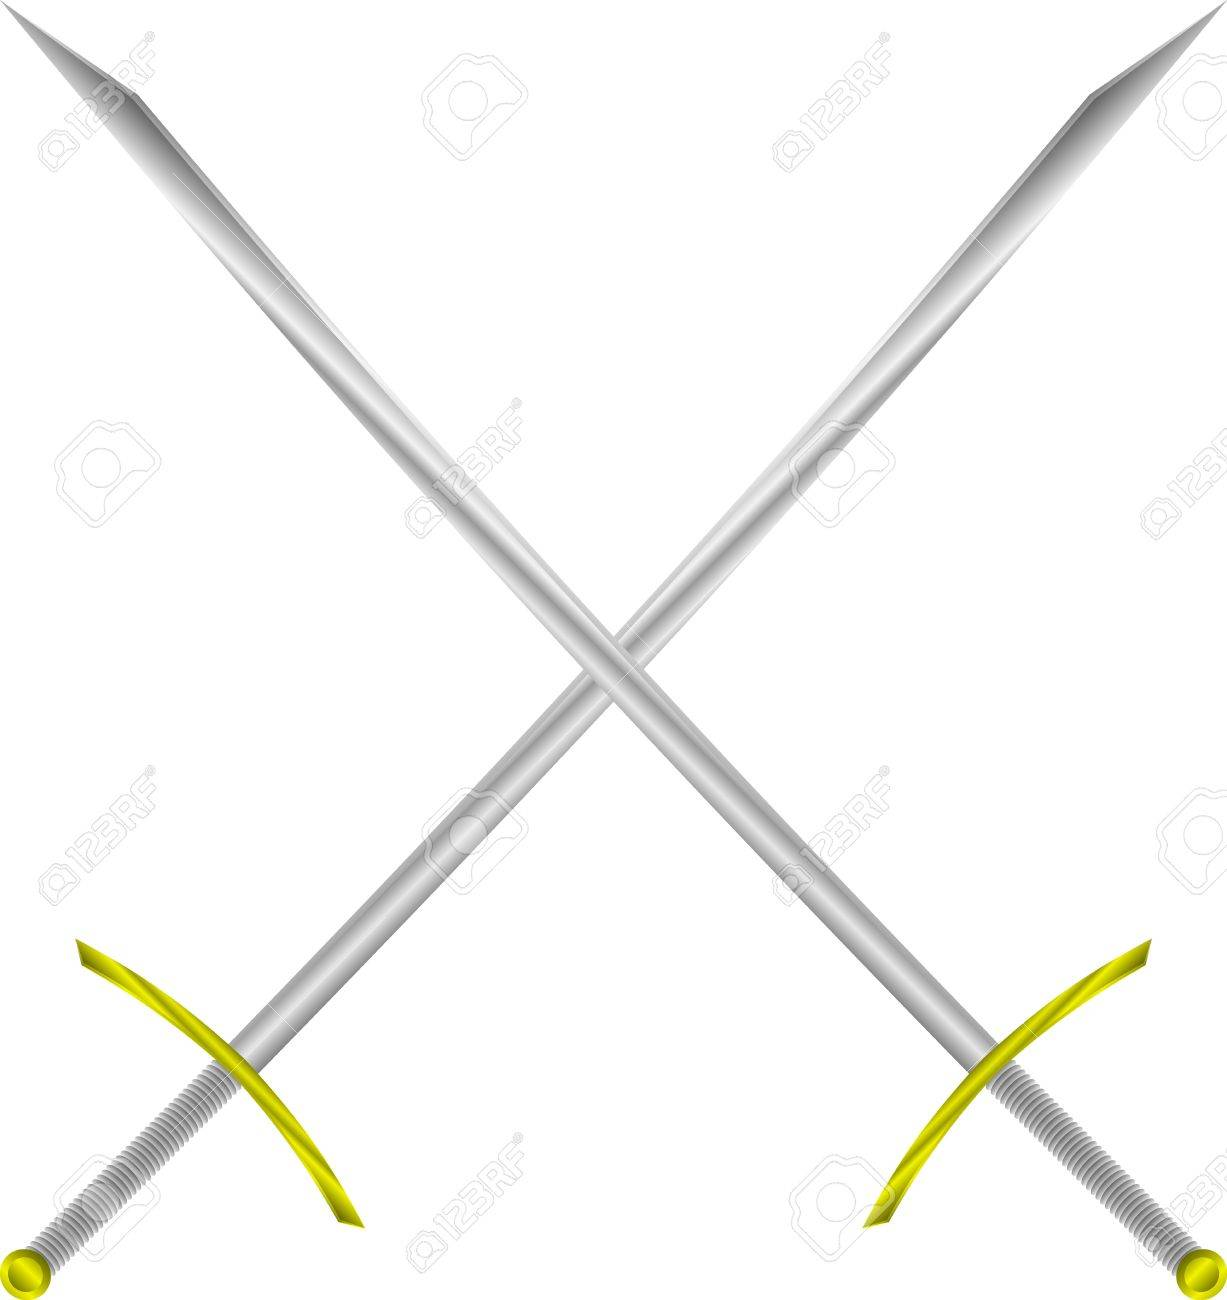 Two crossed swords isolated on white background - vector illustration Stock Vector - 11087126